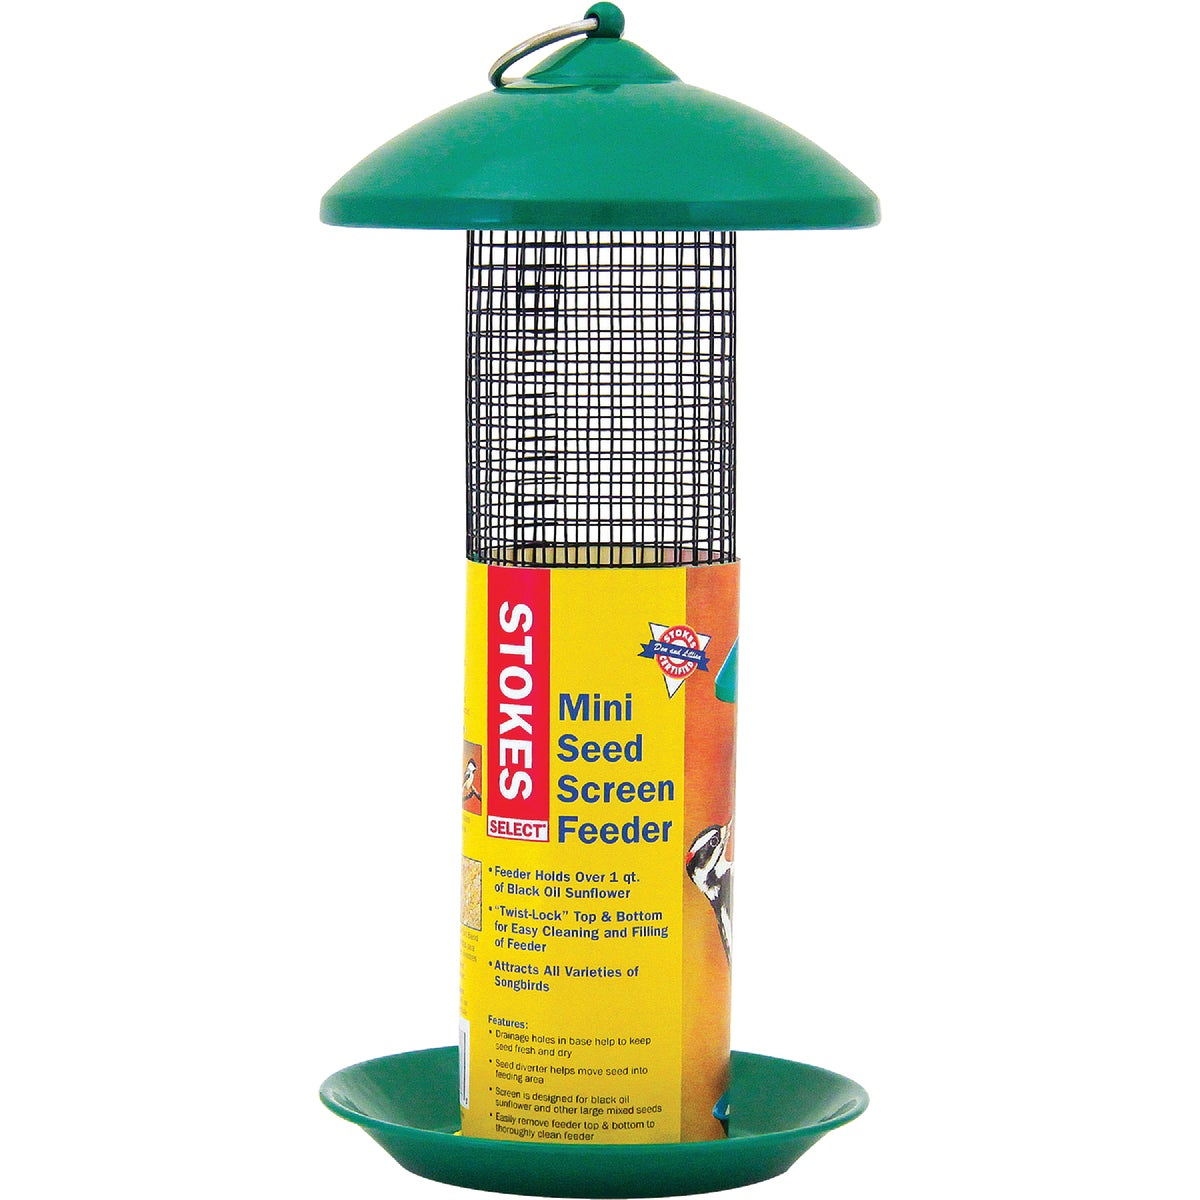 MINI SCREEN SEED FEEDER